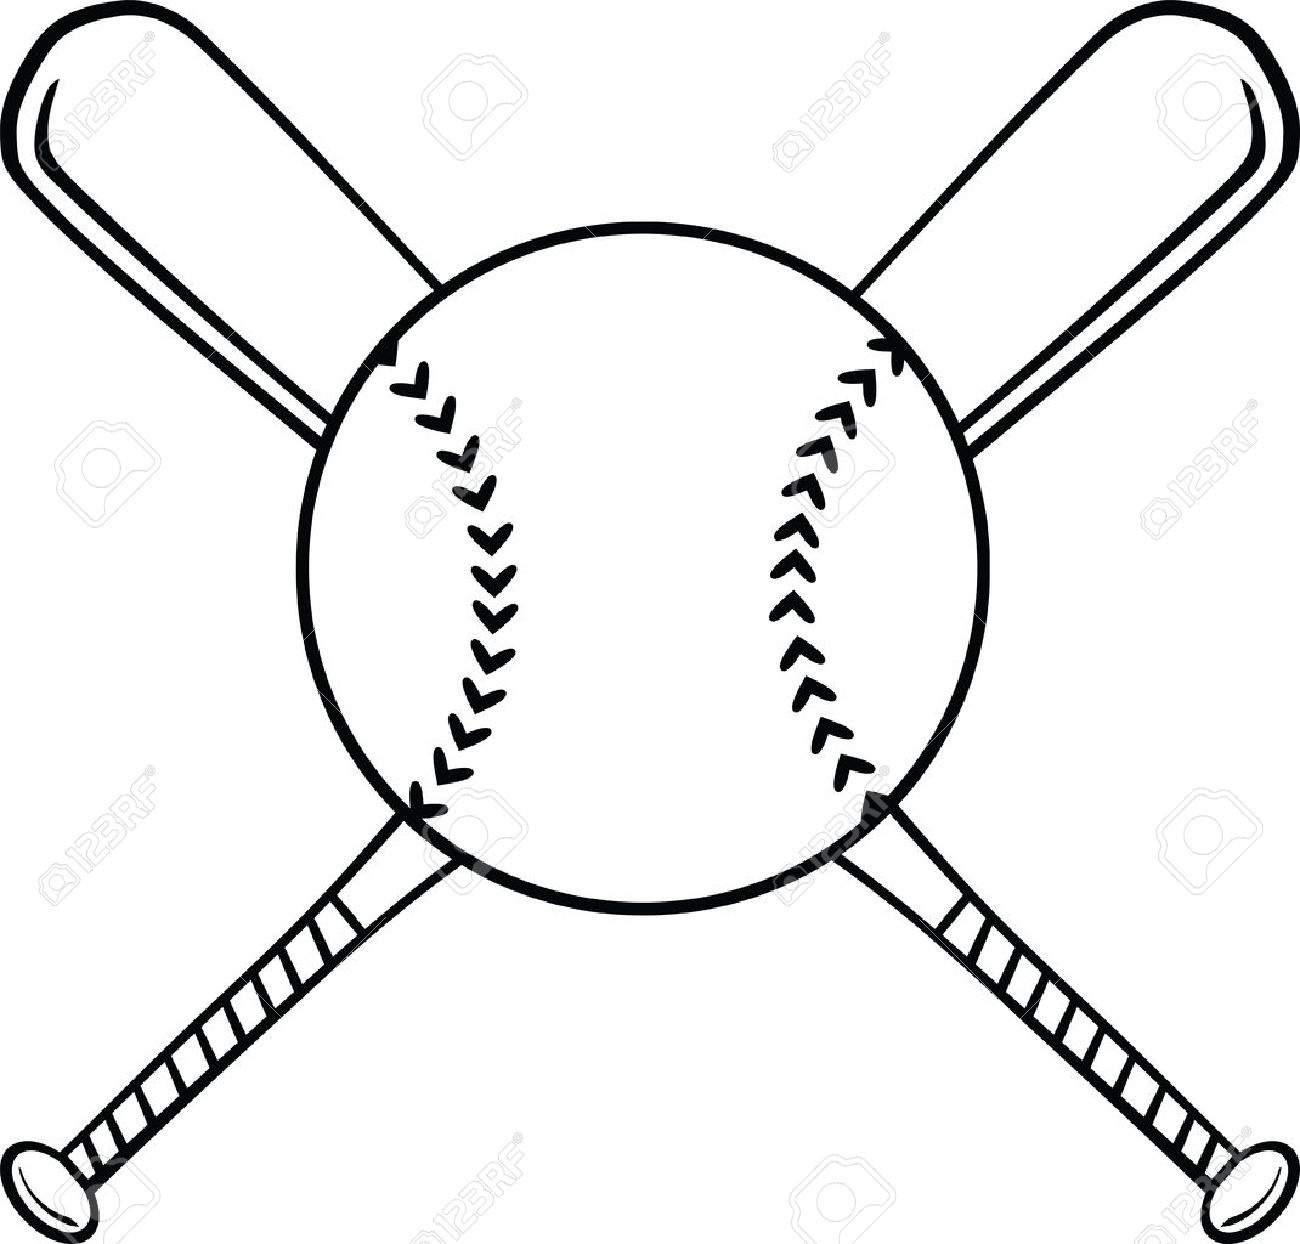 1300x1244 Crossed Baseball Bats Clipart Black And White Letters Example